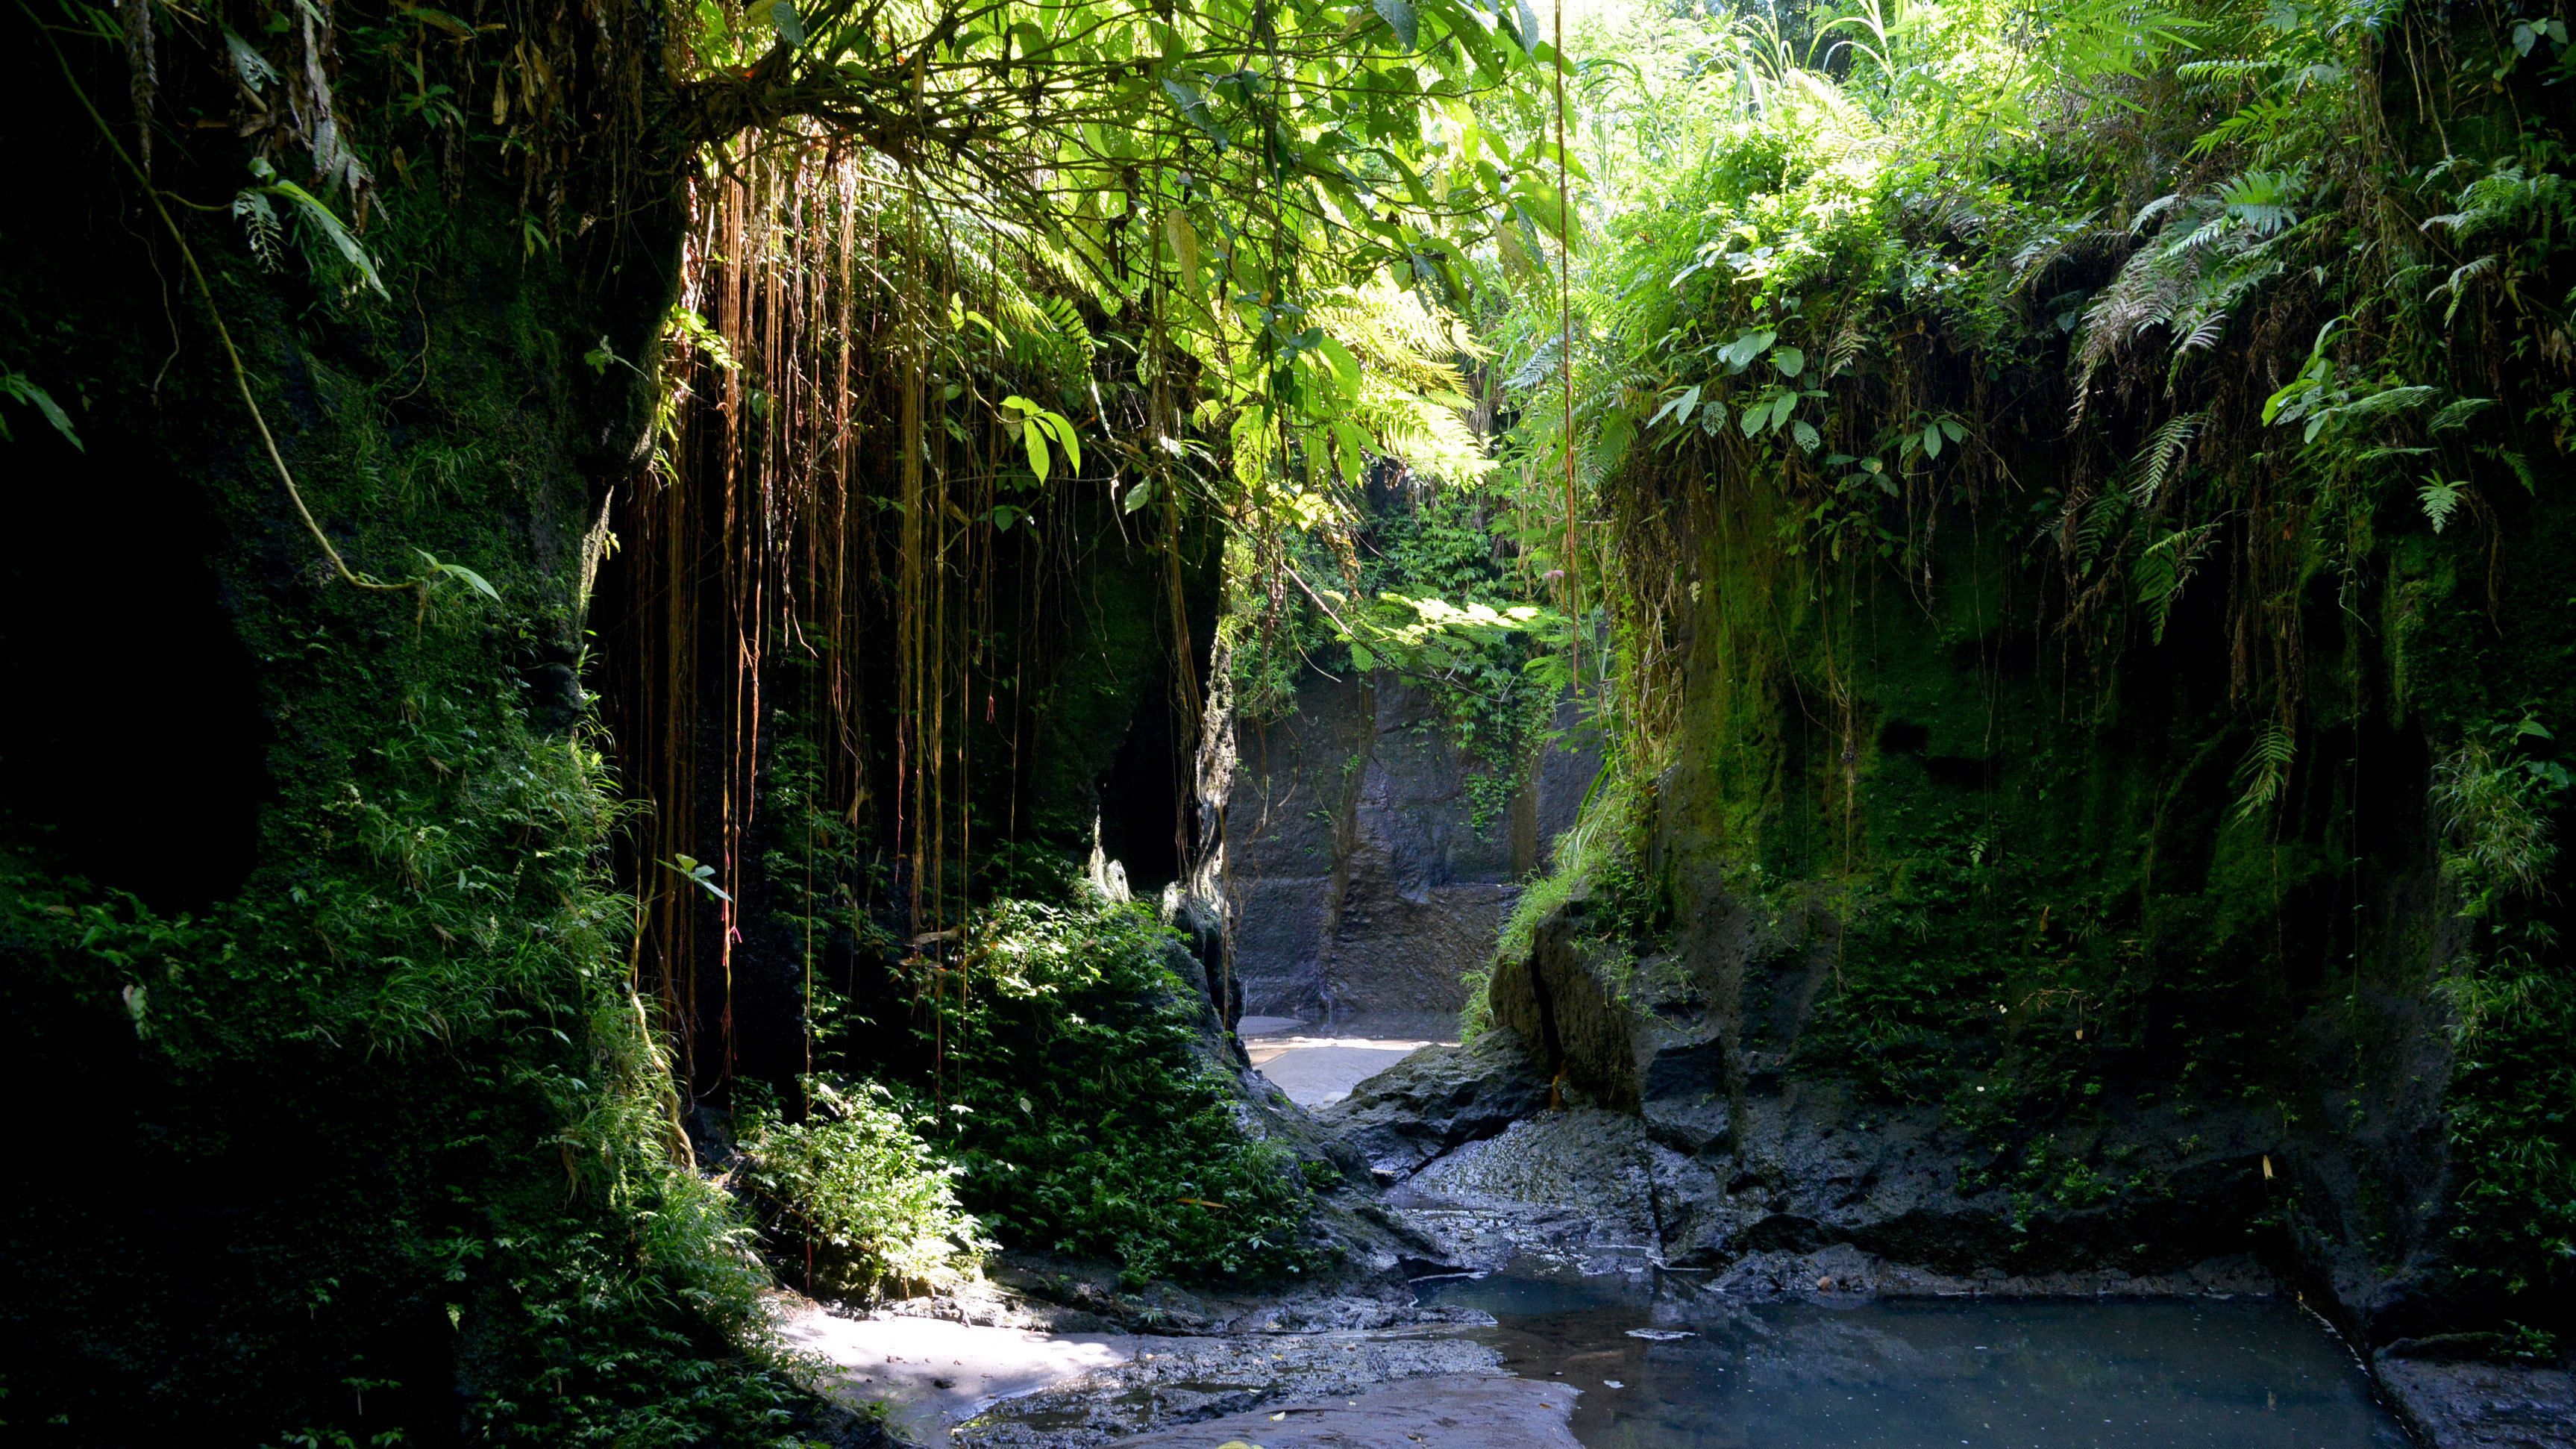 Lush vegetation growing amongst forest in Bali